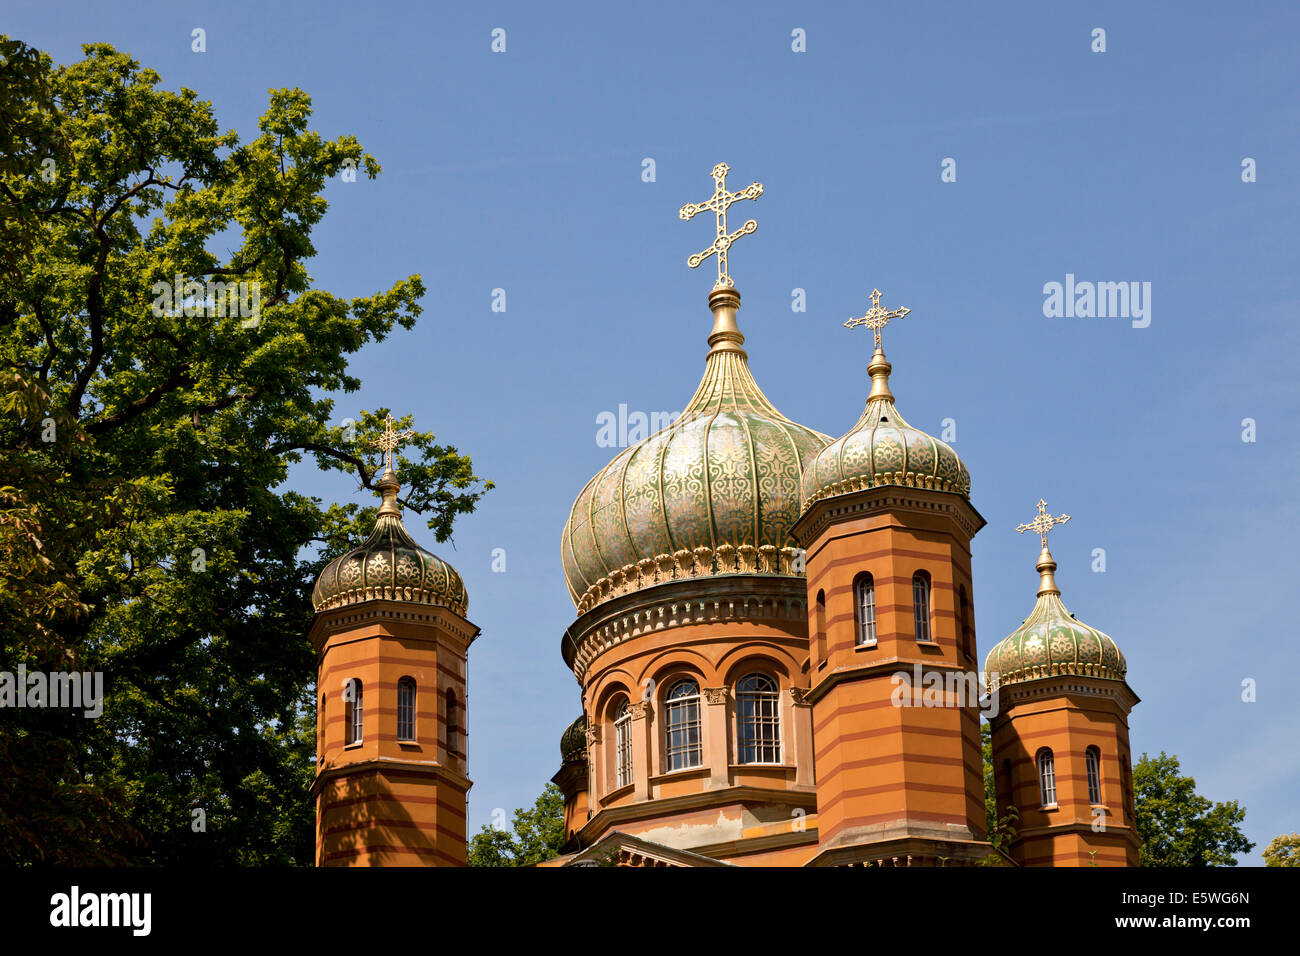 Chapelle Orthodoxe russe, Weimar, Thuringe, Allemagne, Europe Banque D'Images